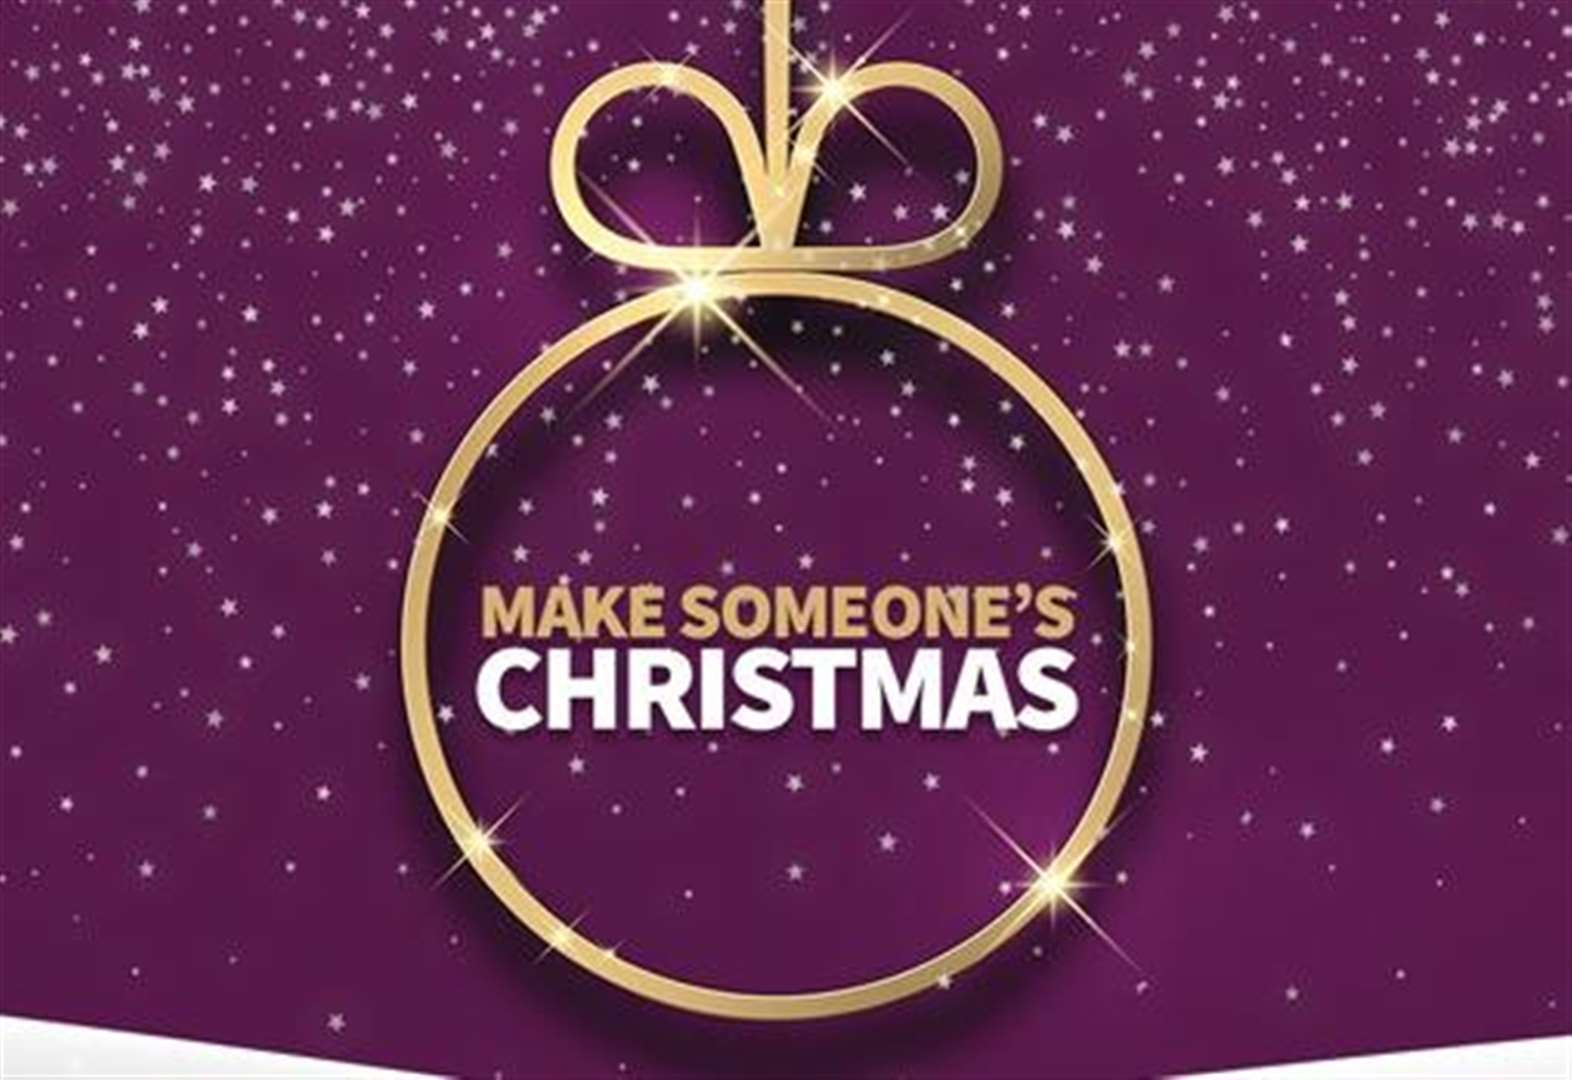 Do you want to Make Someone's Christmas?